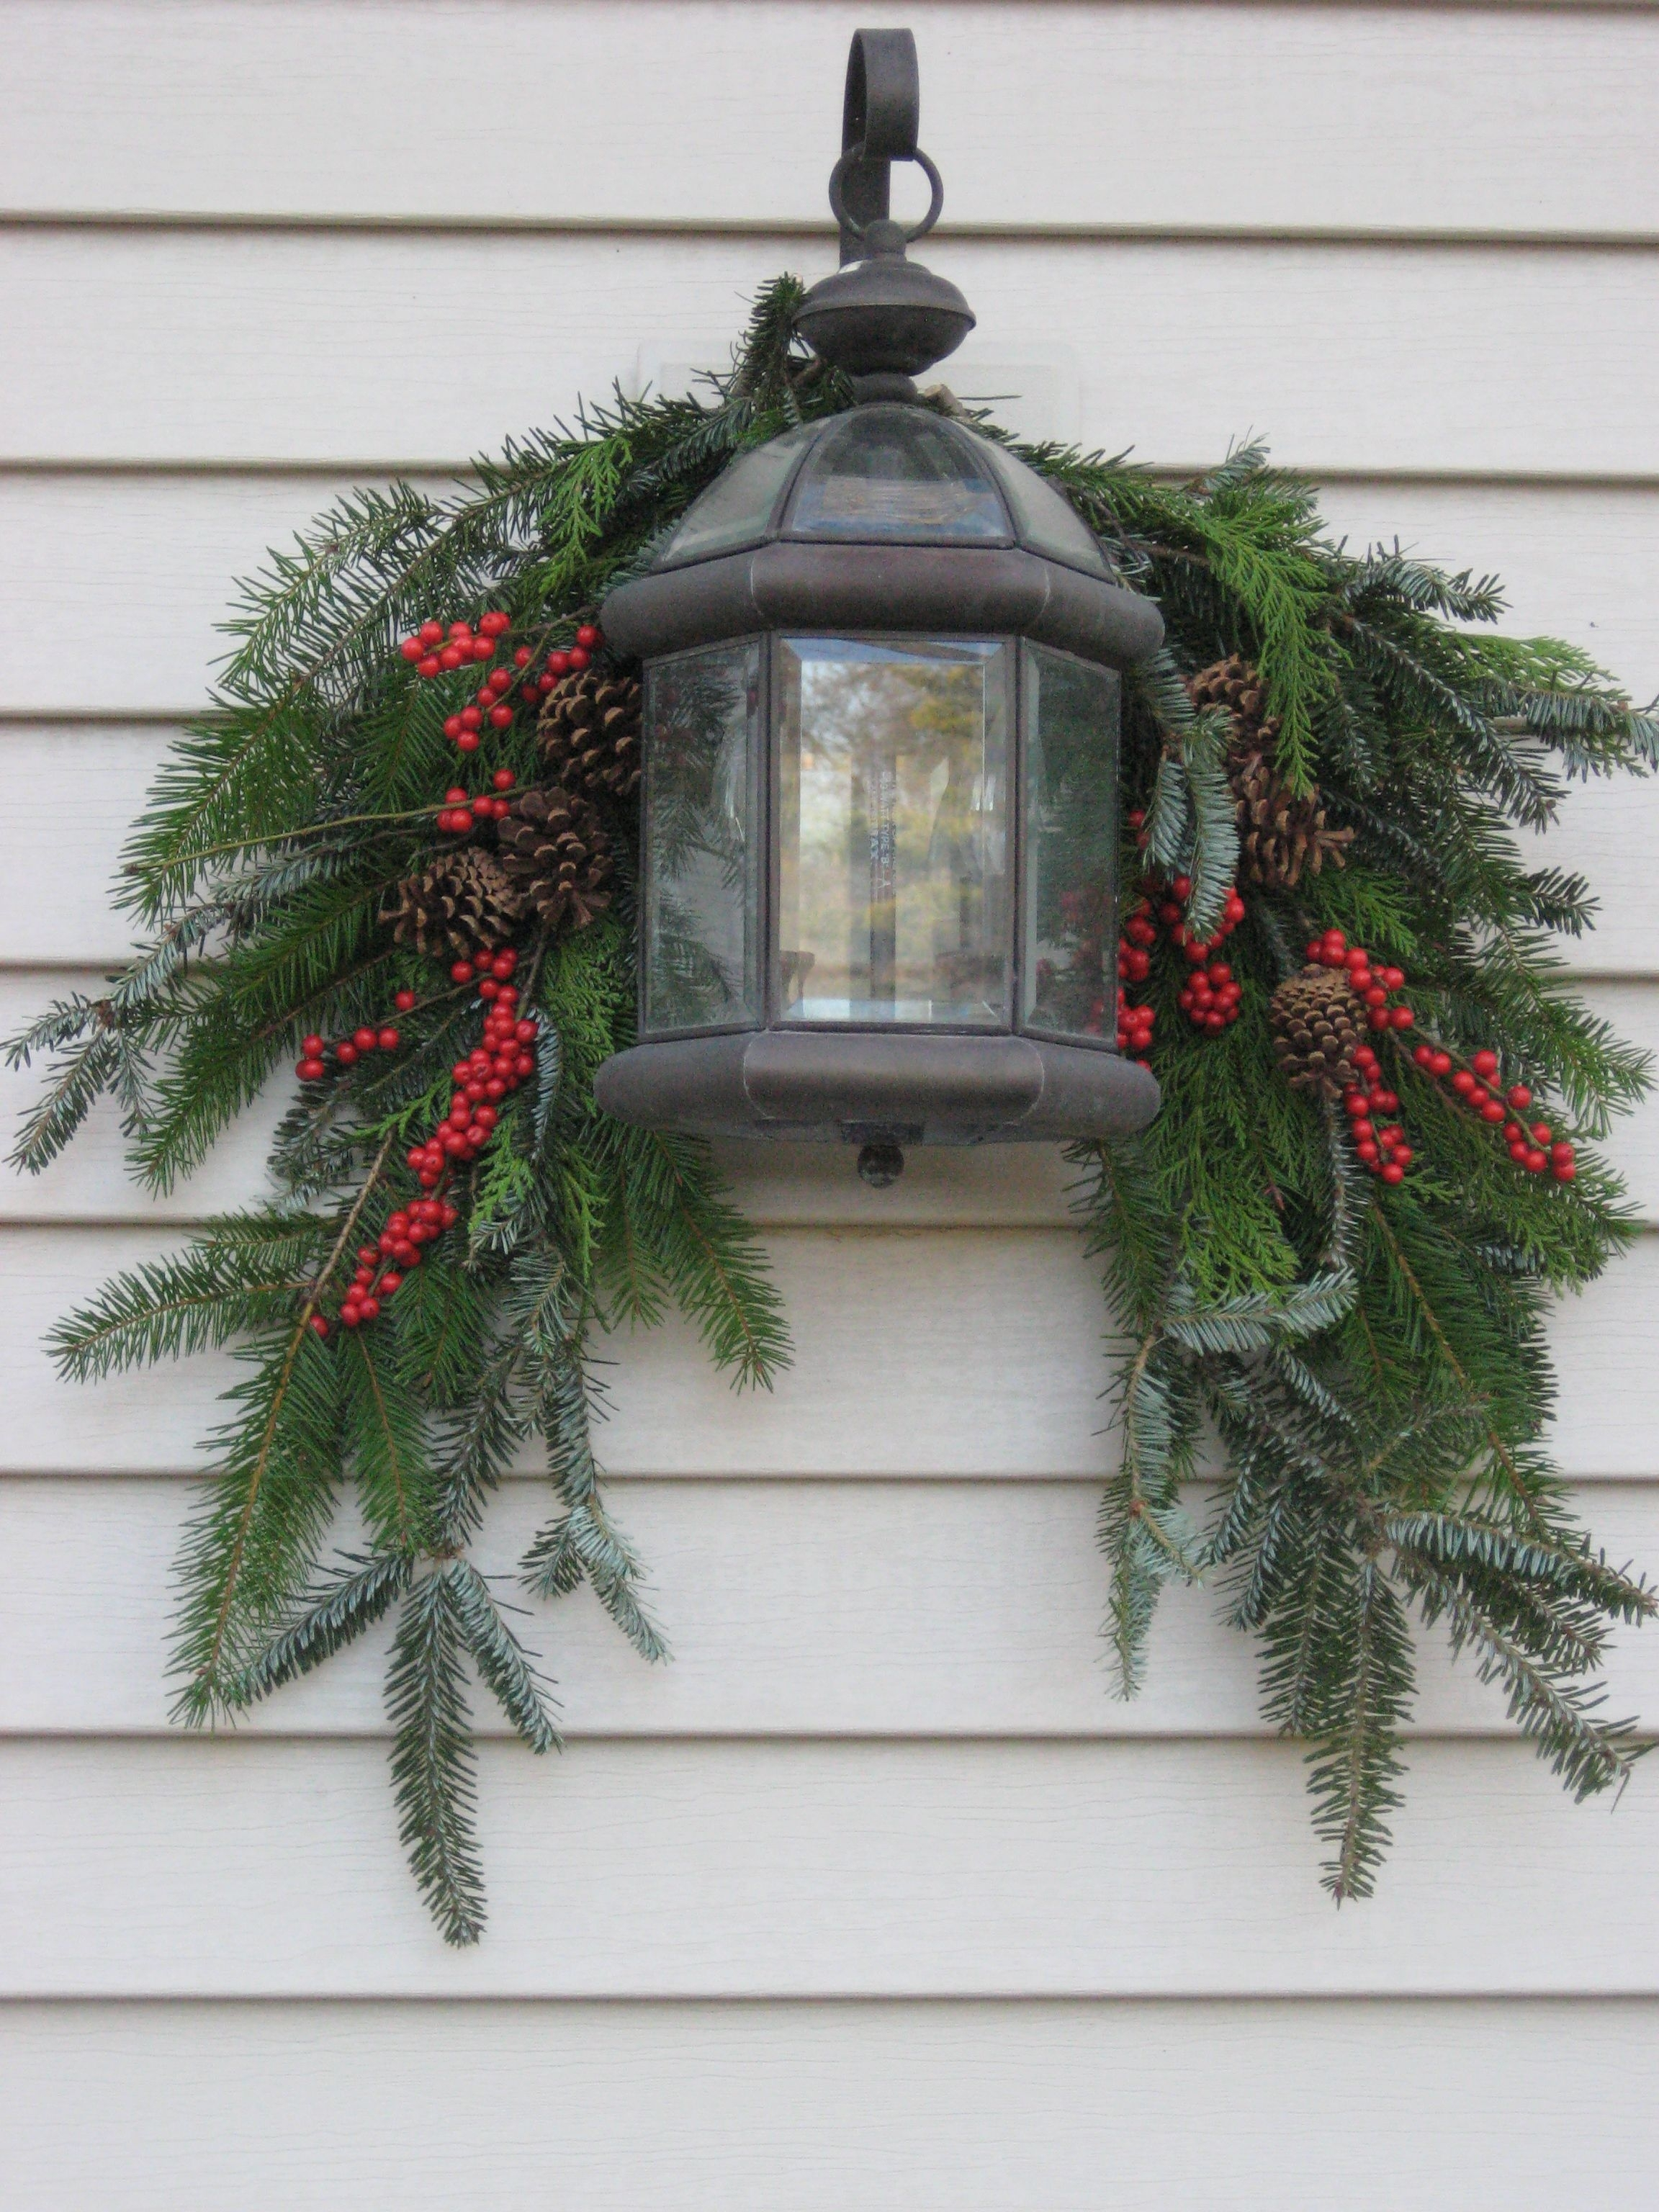 A Guide To Beautiful (And Not Tacky) Outdoor Holiday Decor In 2018 inside Outdoor Xmas Lanterns (Image 3 of 20)